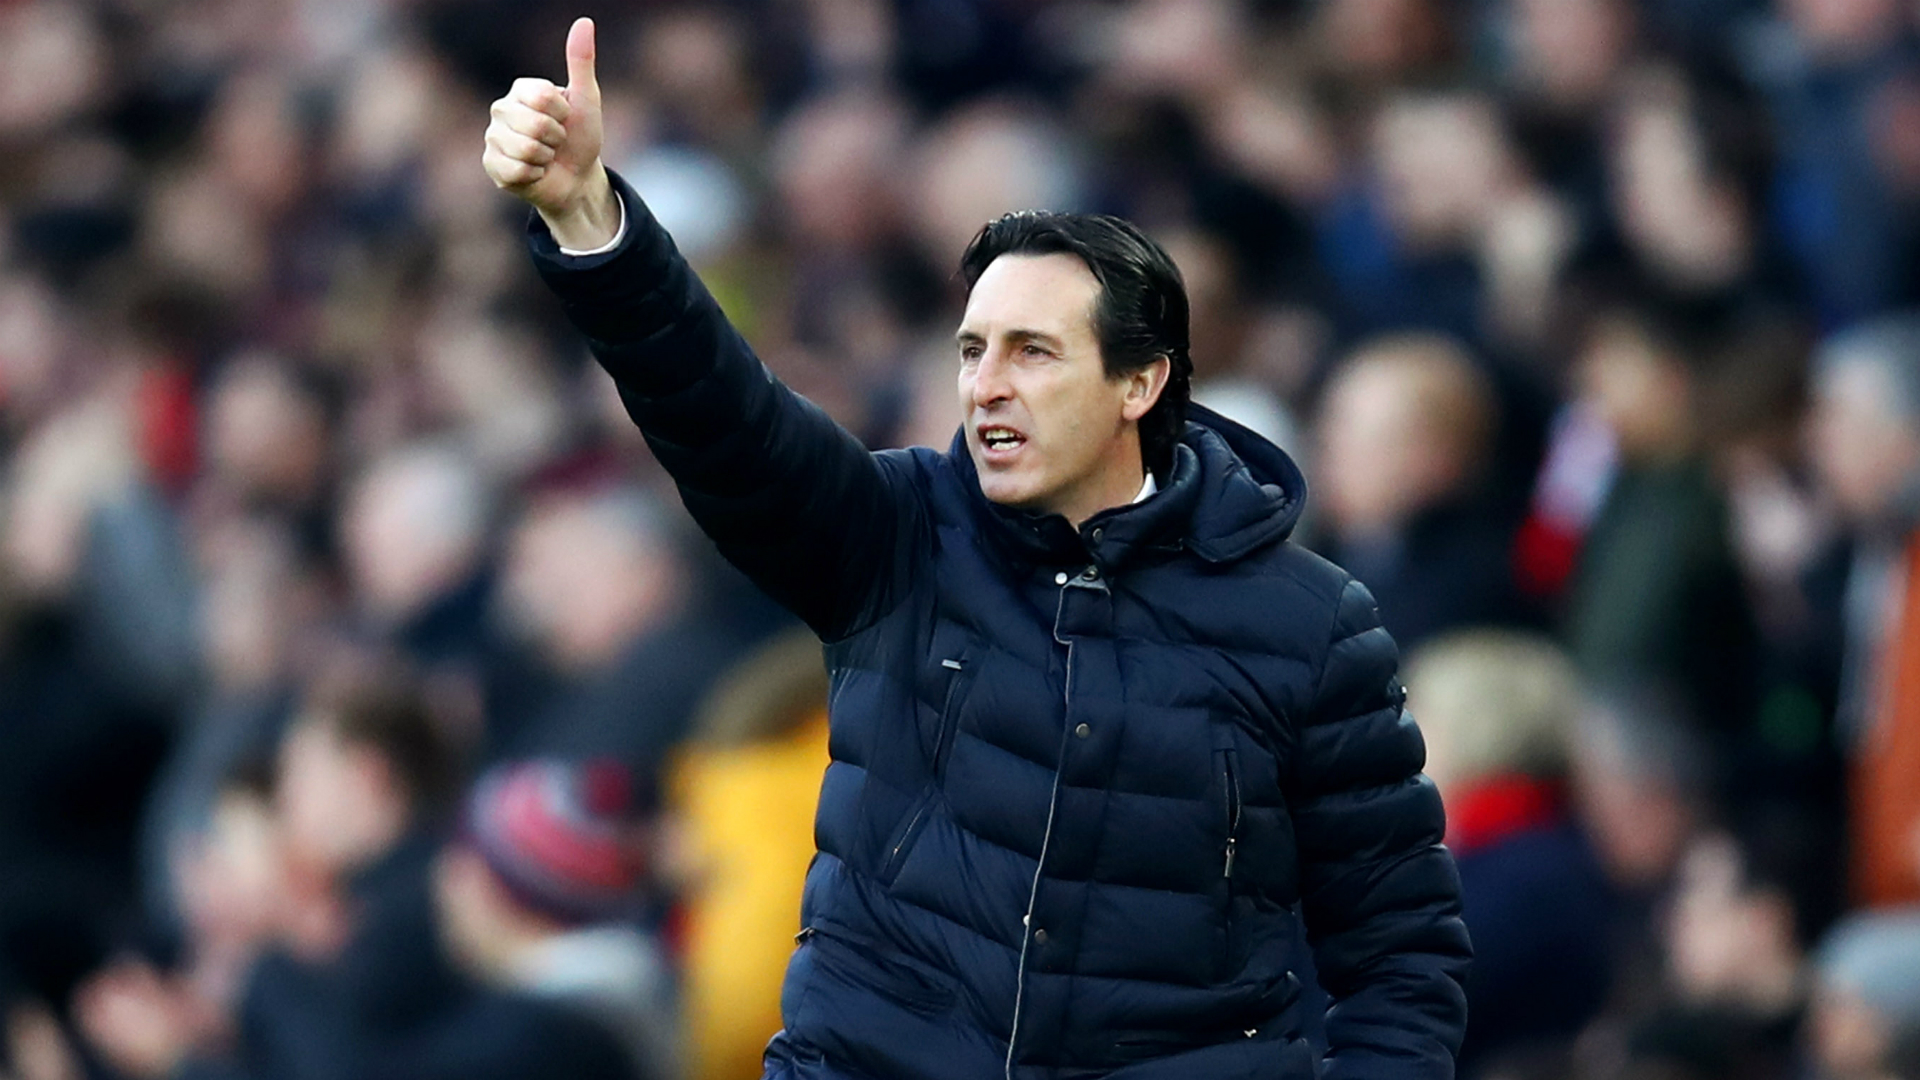 Emery embracing pressure as Arsenal attempt Rennes comeback